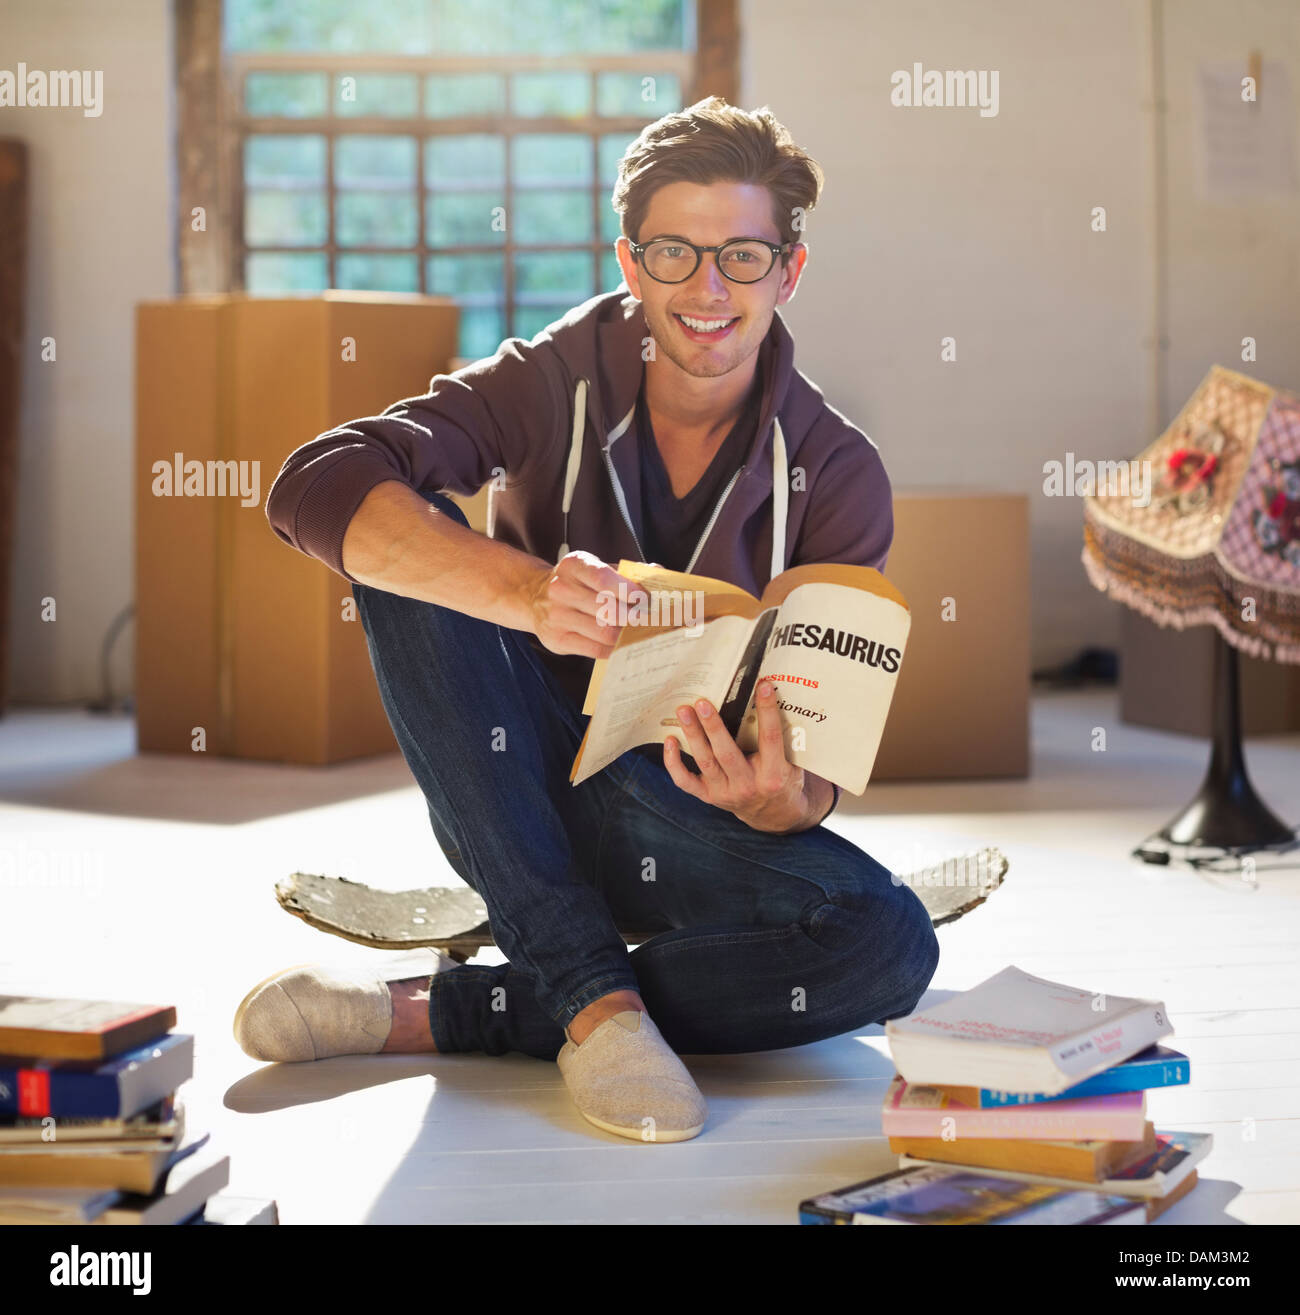 Man reading in new home - Stock Image